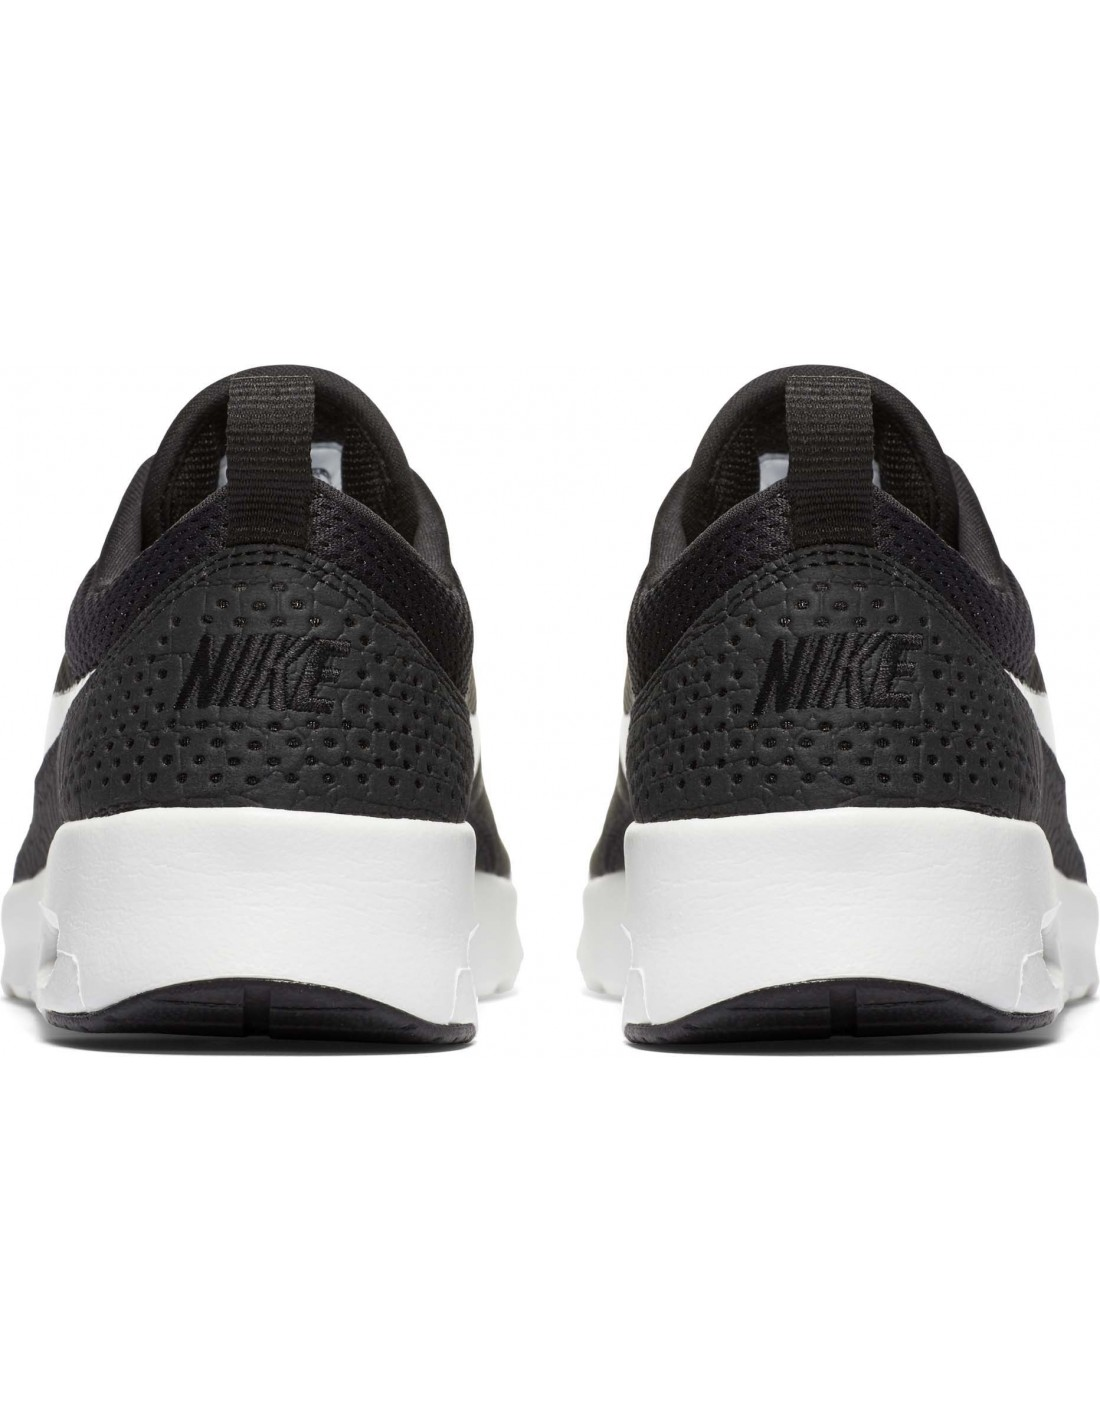 timeless design 95178 5b5d7 basket nike femme Womens nike air max thea shoe 599409-020